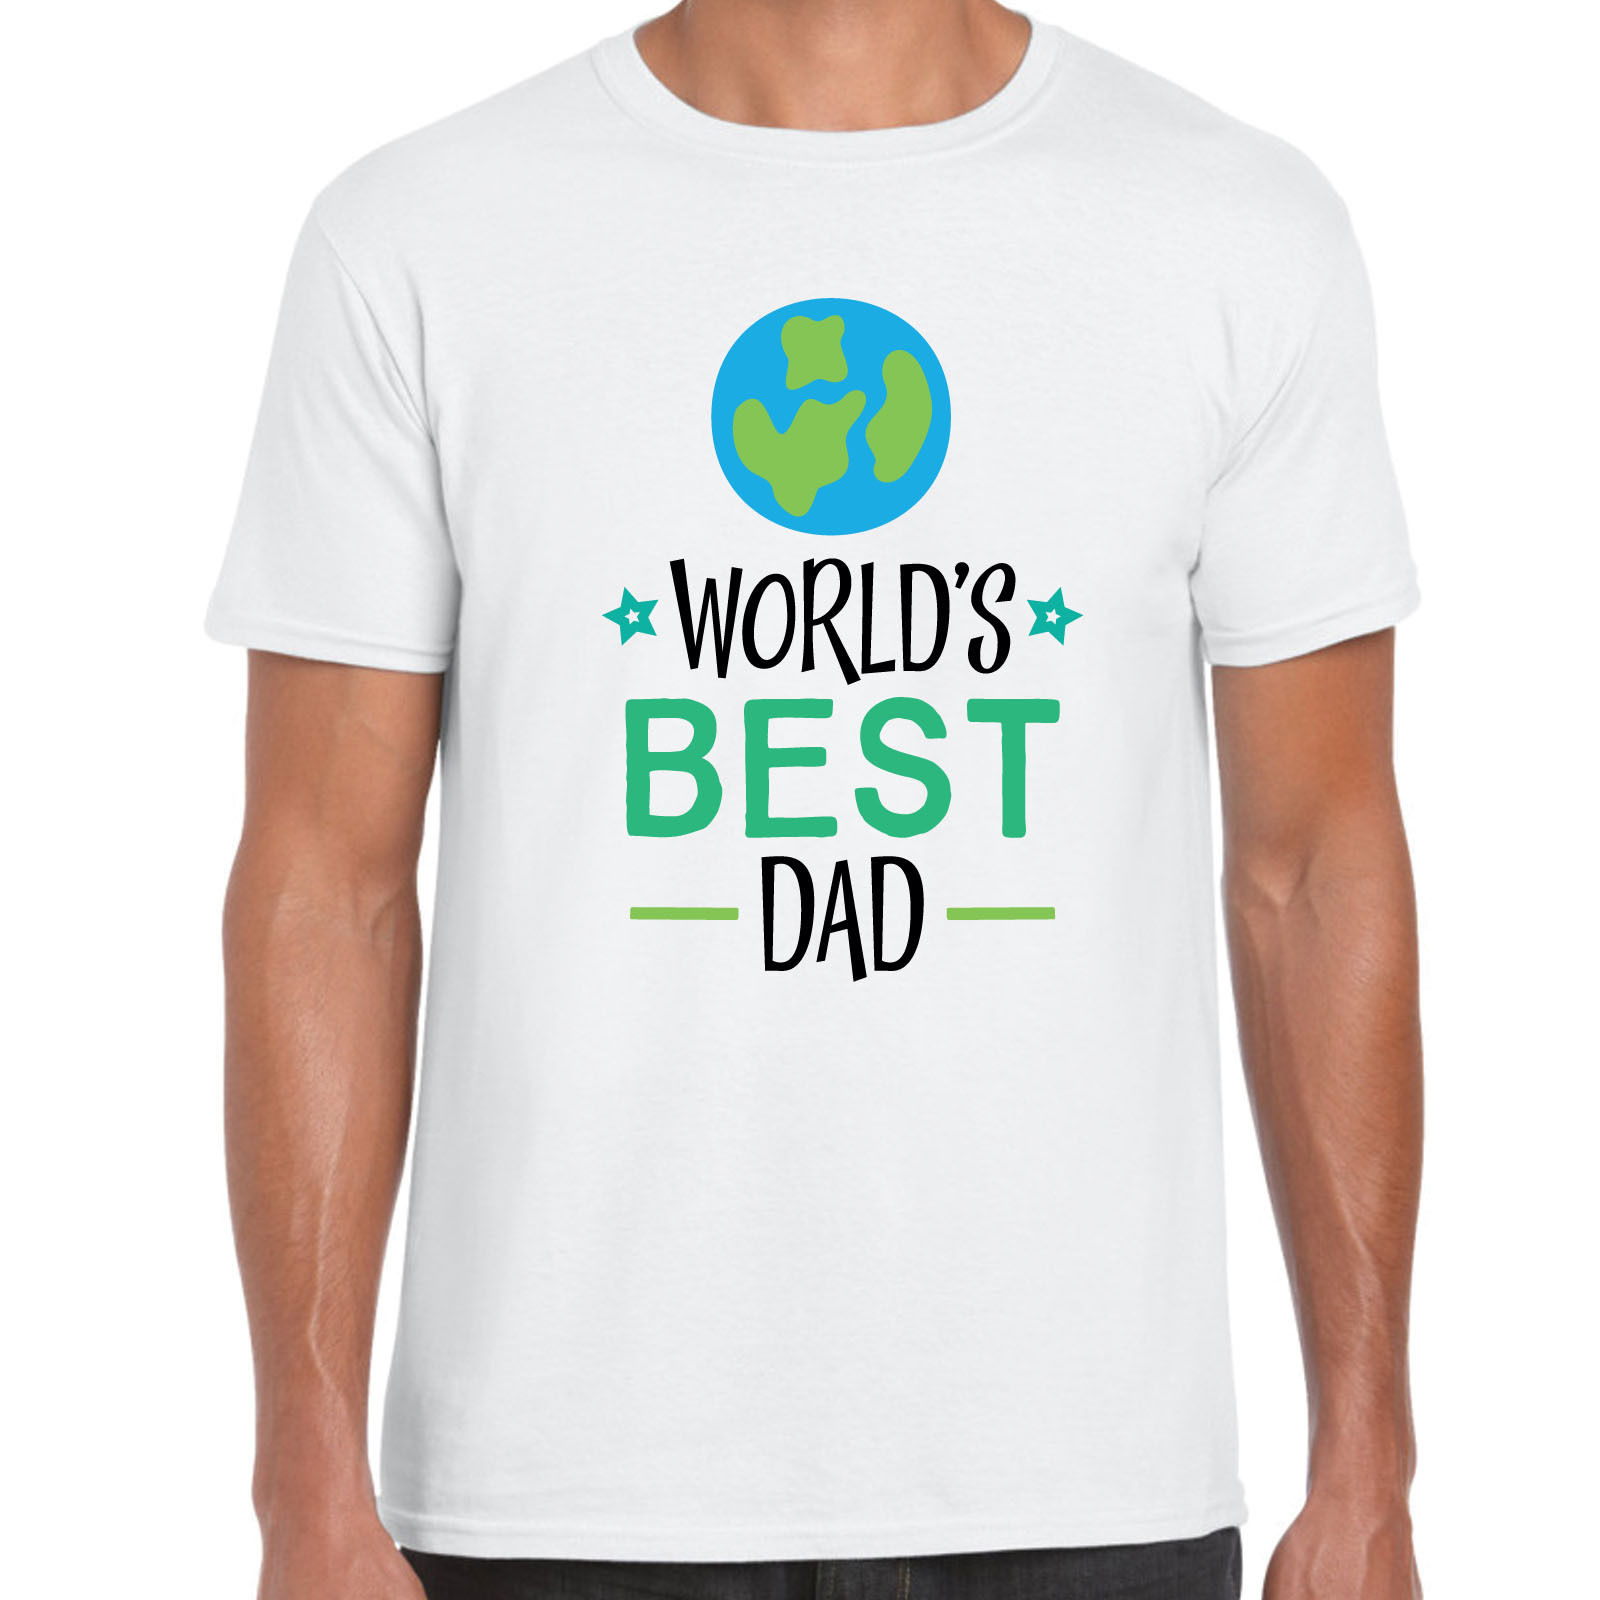 Worlds Best Dad 2 - Mens T shirt - Gift Fun Fathers Day